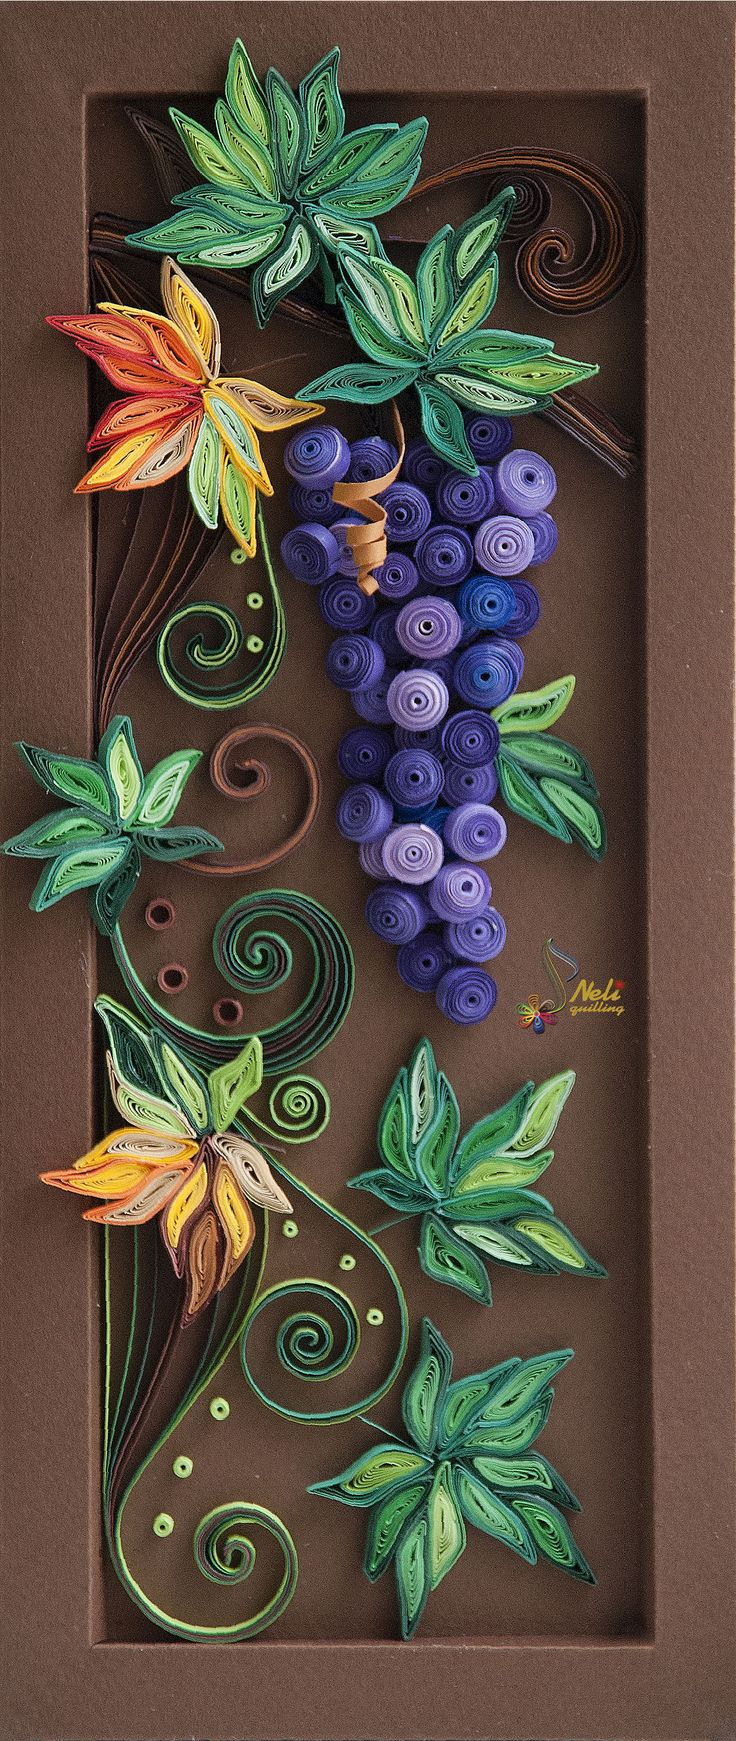 Grapes neli quilling art grapes pinterest Wall art paper designs